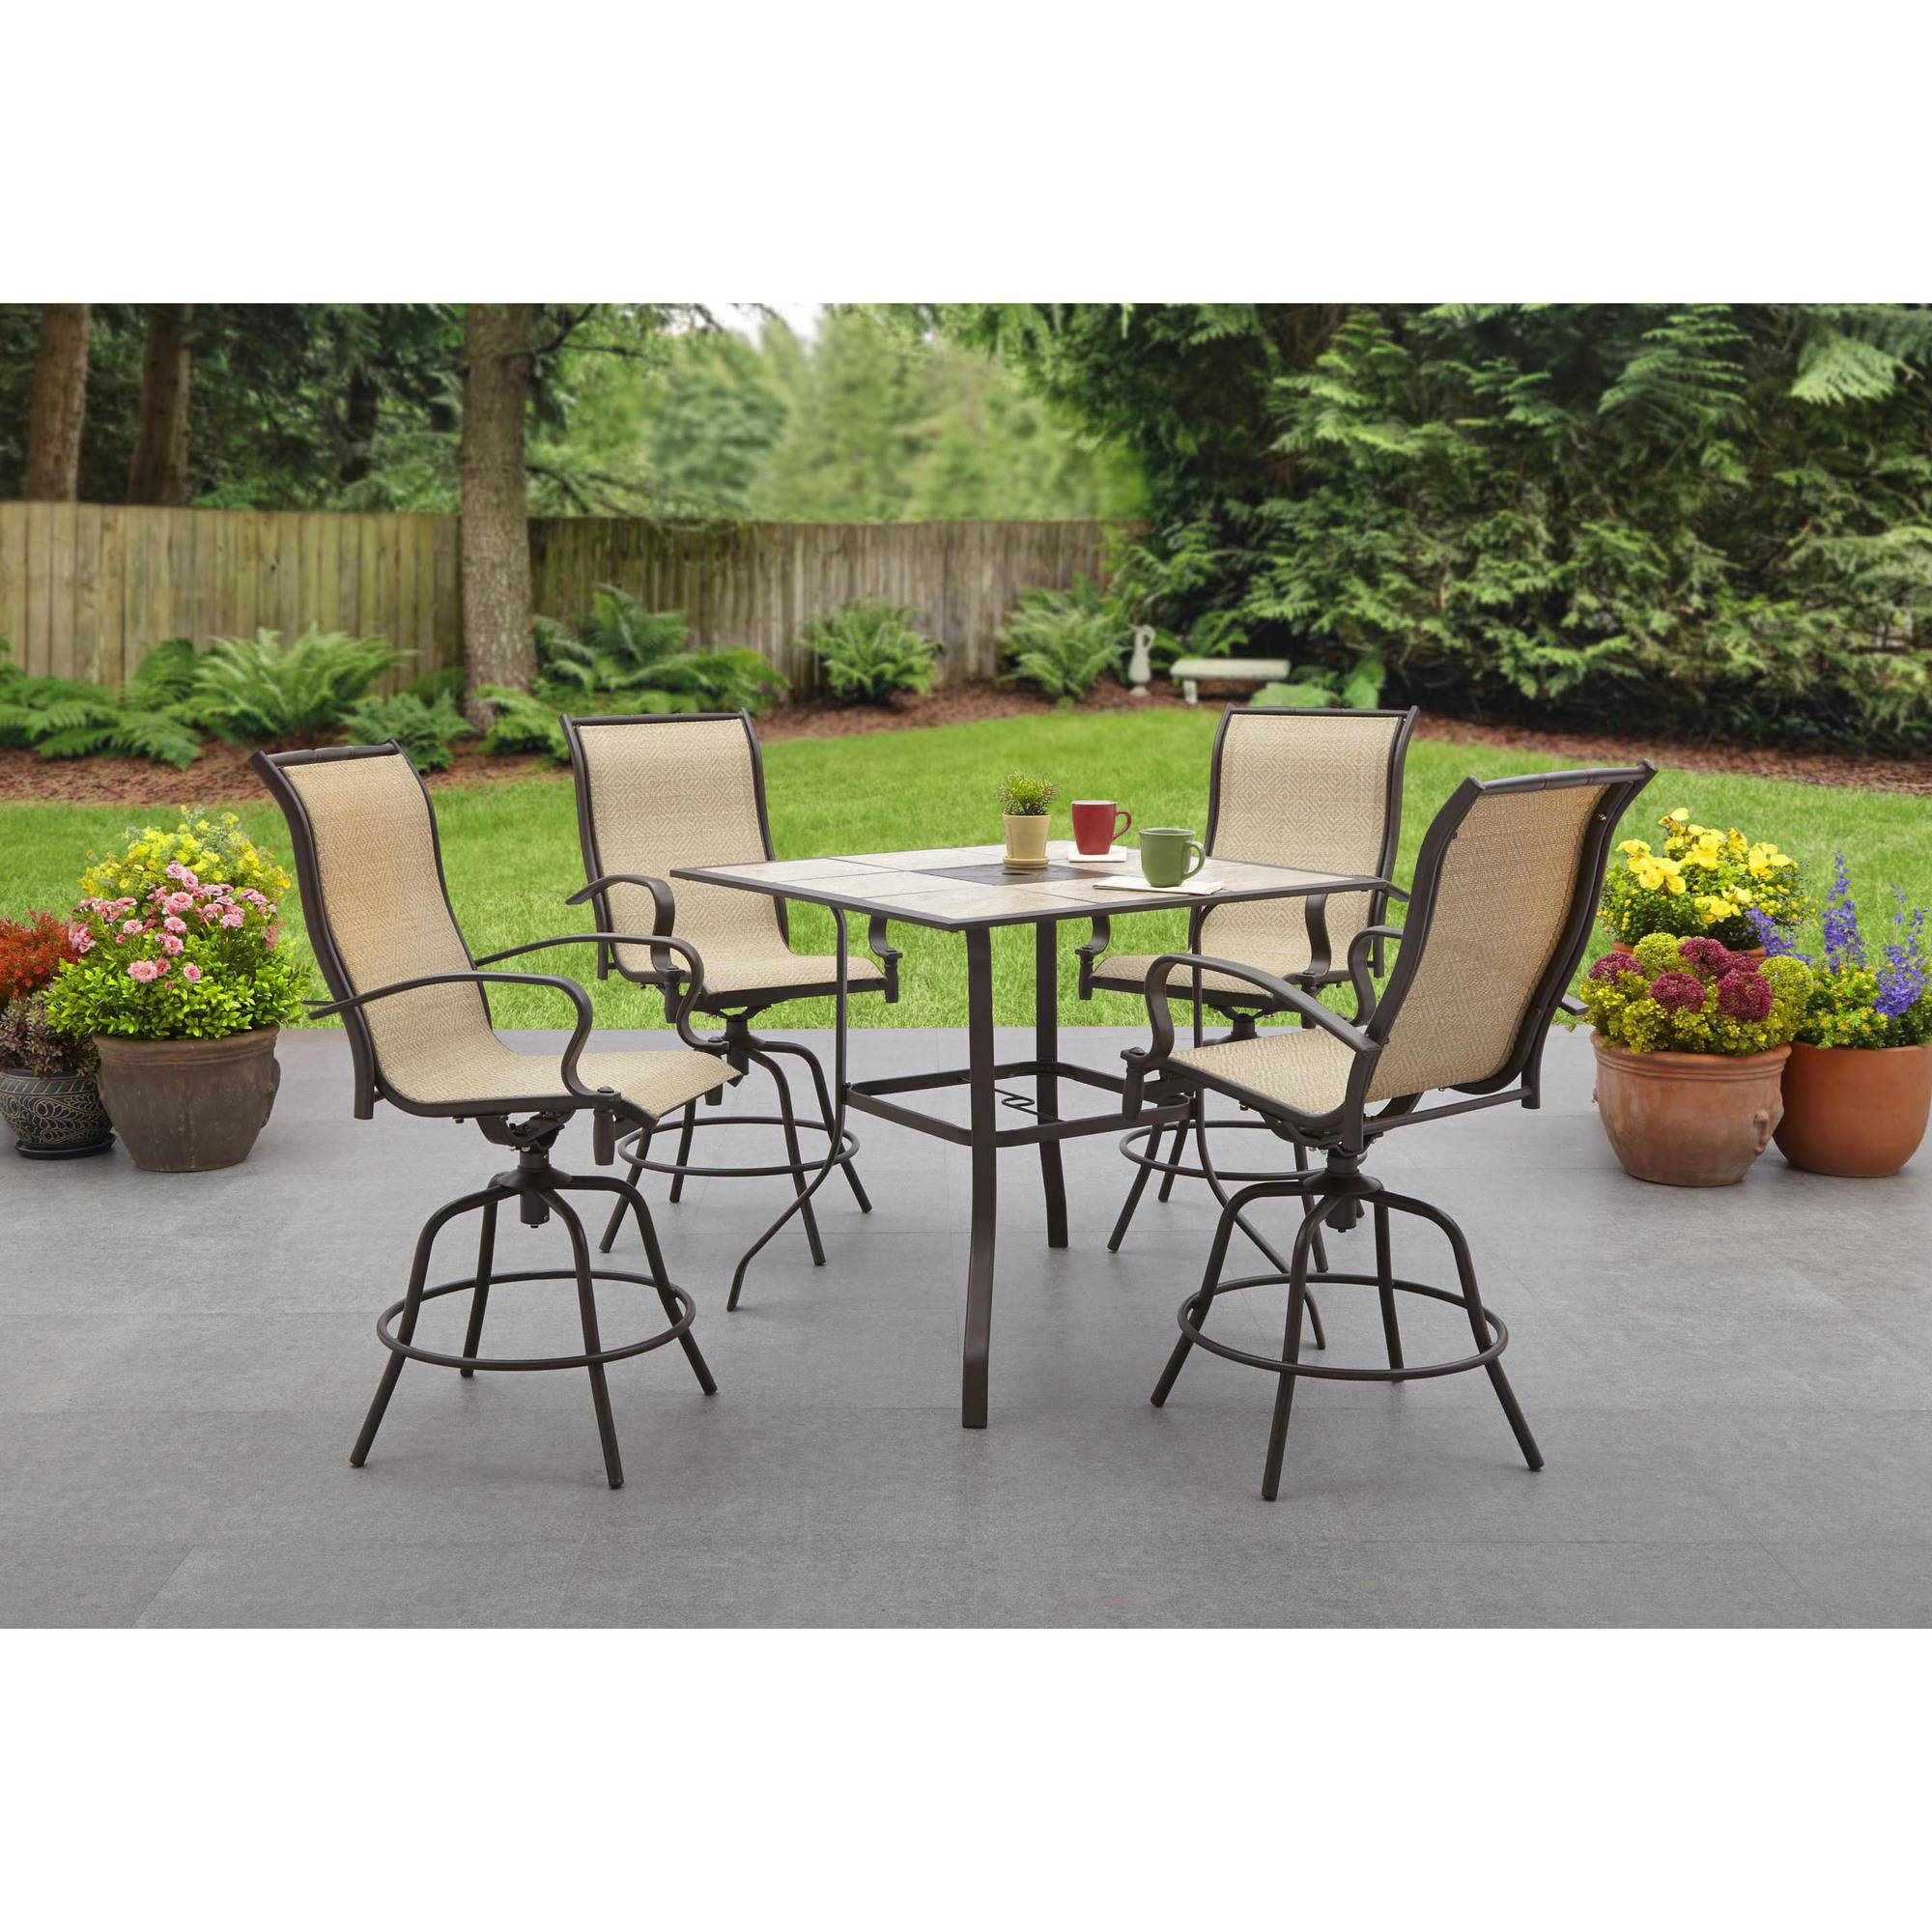 Restaurant Patio Chairs High Dining Patio Furniture Roselawnlutheran